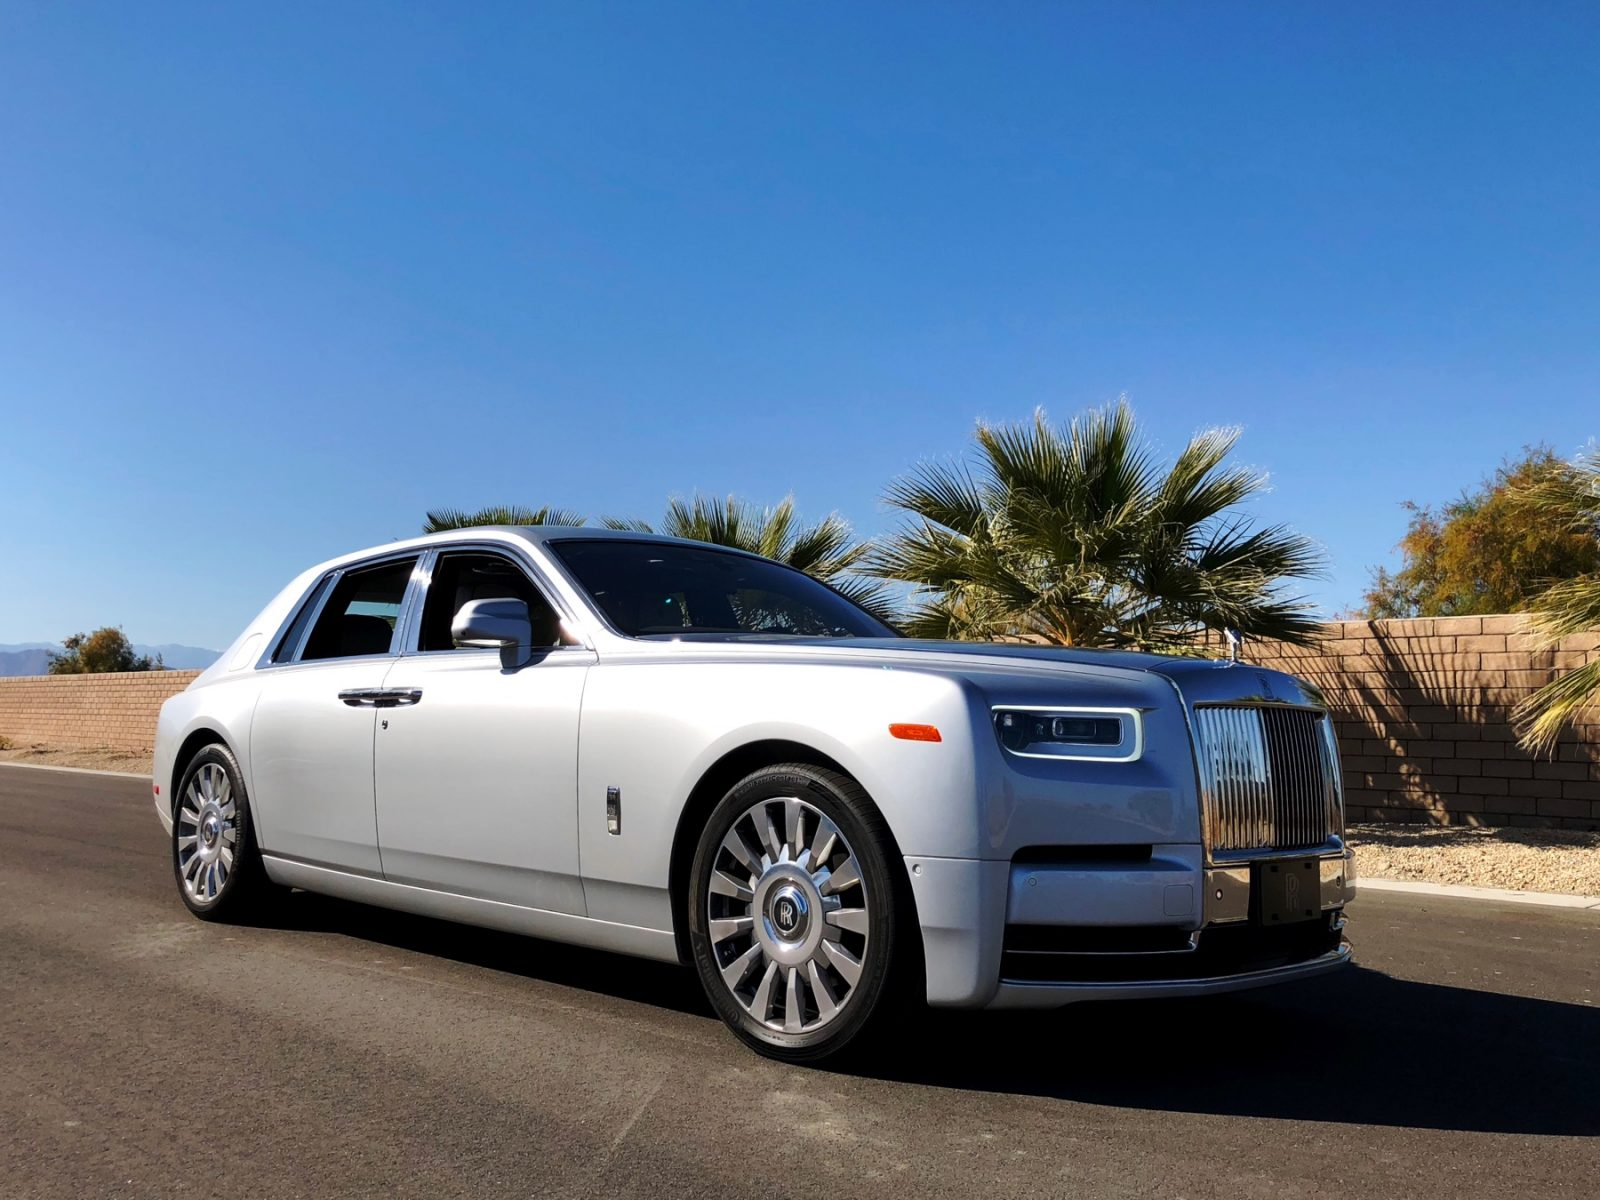 Images of the new roll royce phantom 2020 review